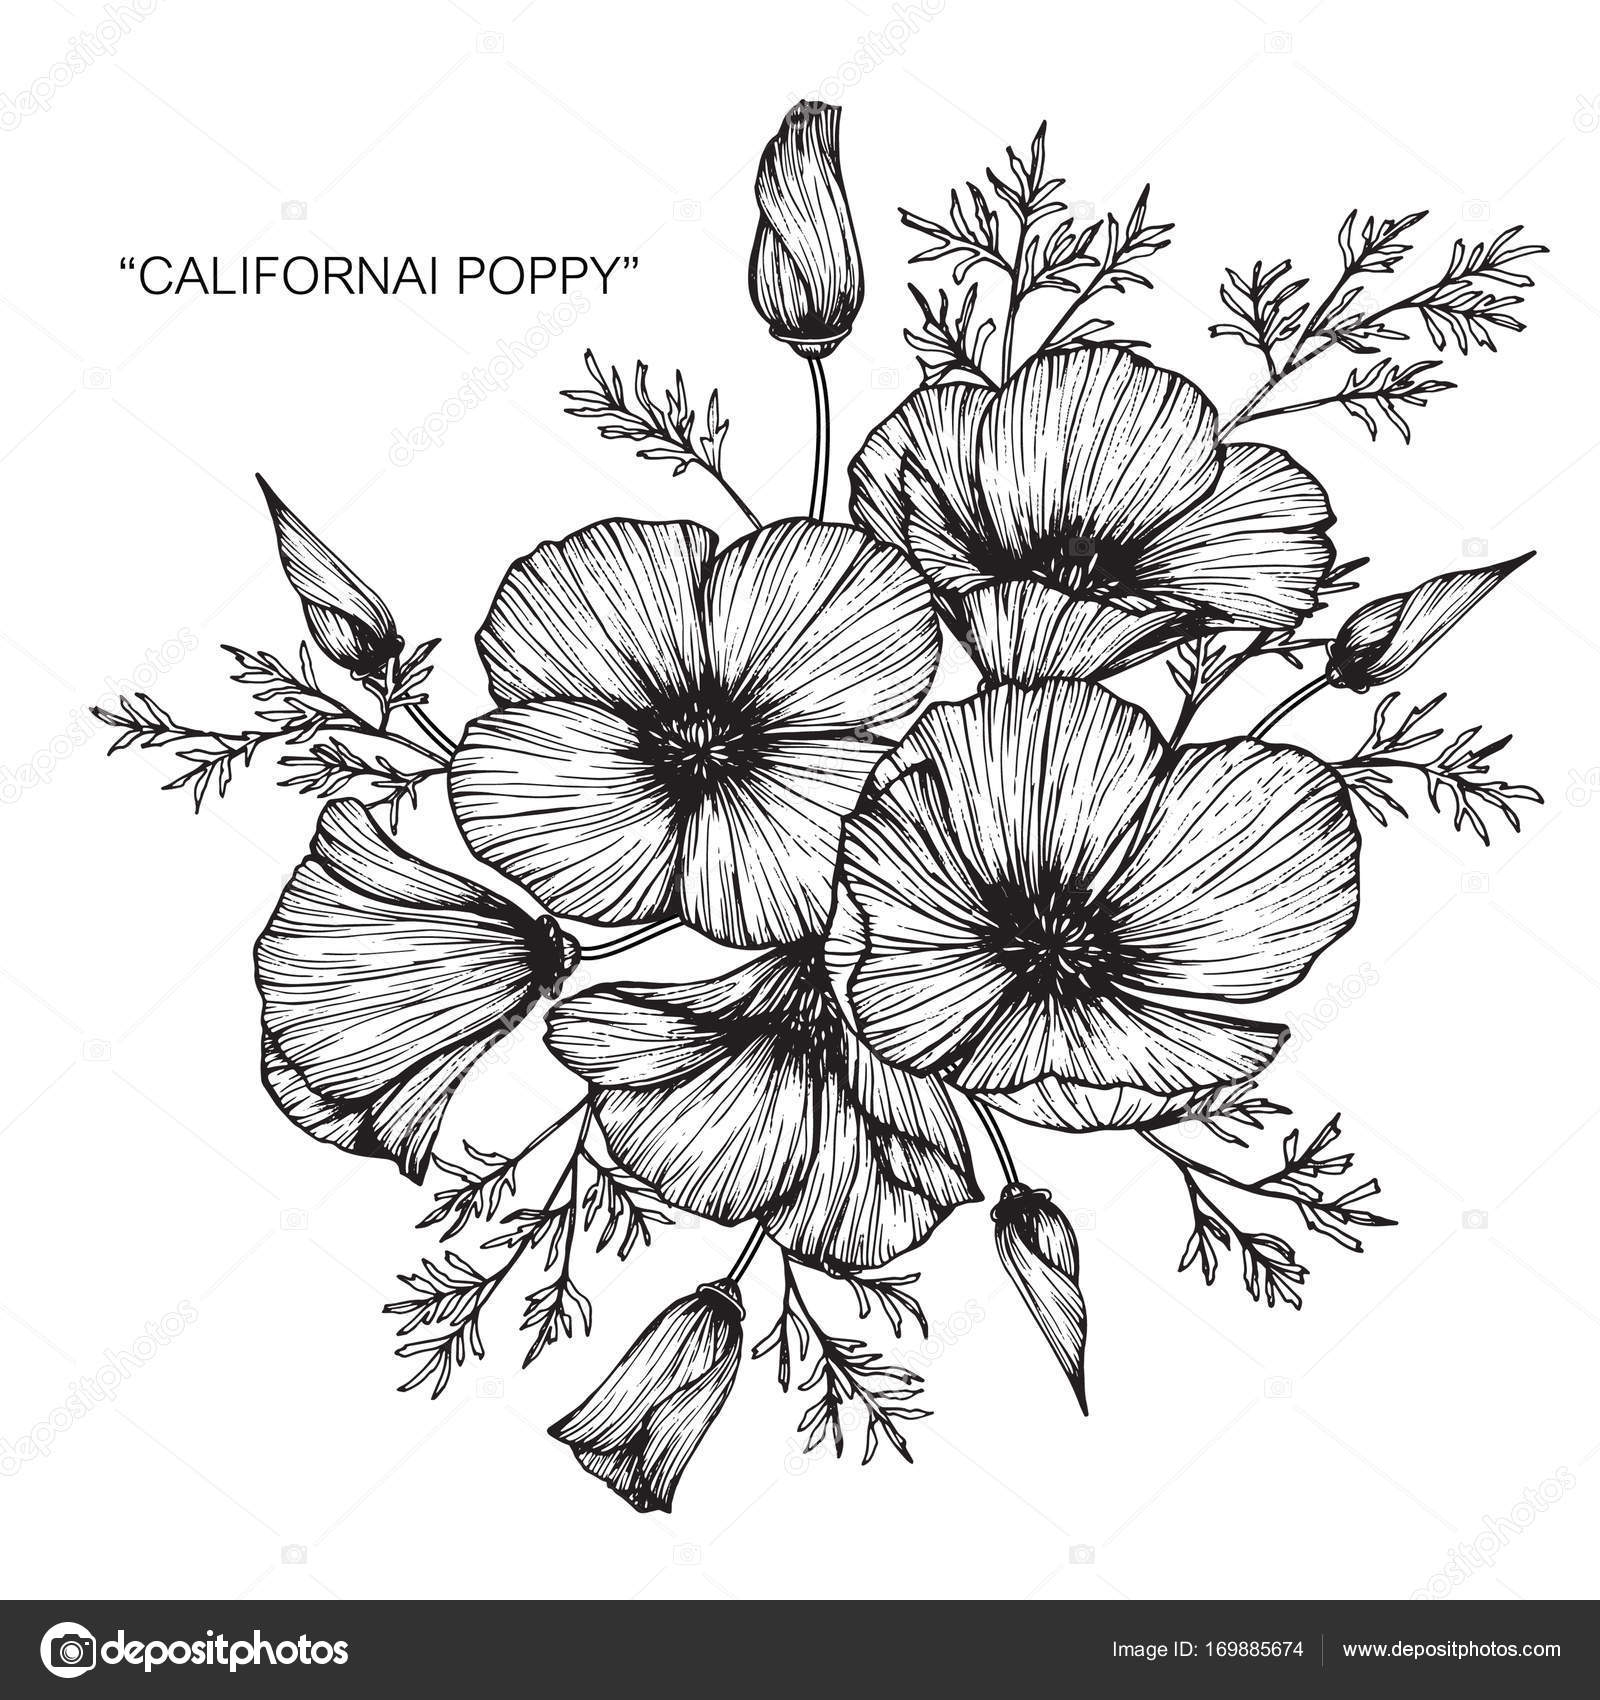 California Poppy Flowers Drawing Sketch Line Art White Backgrounds